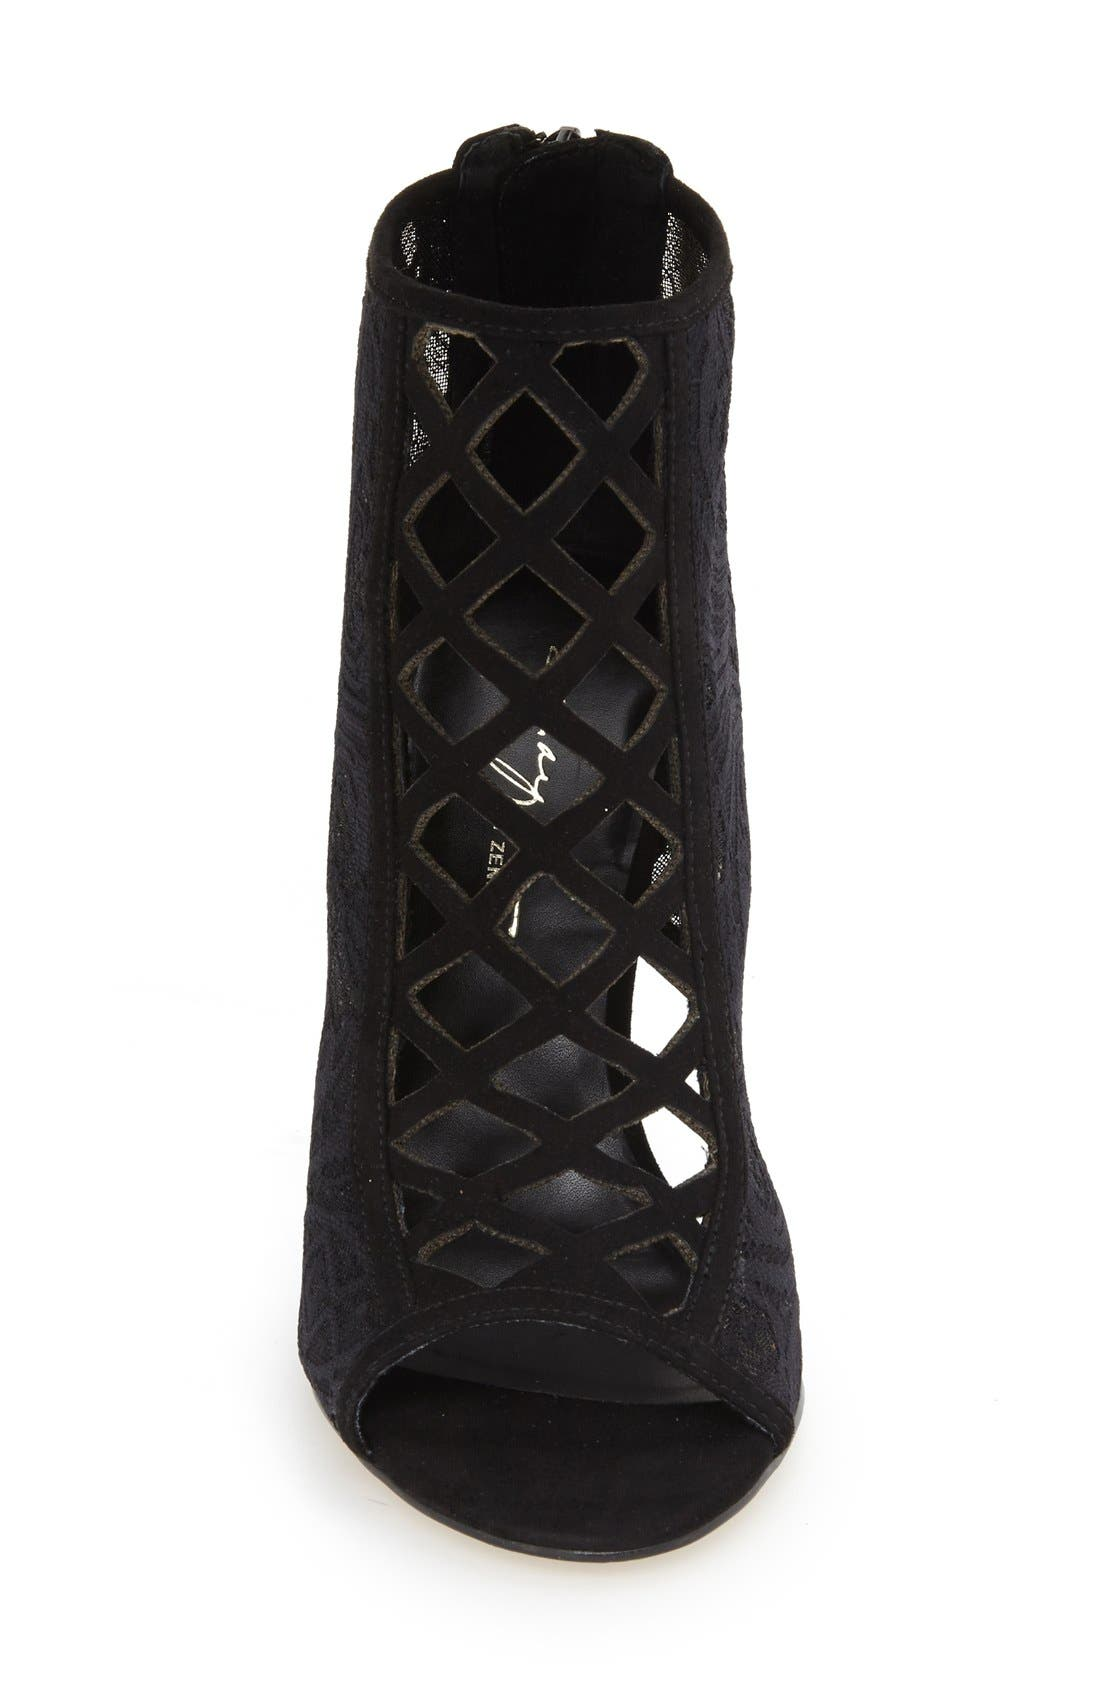 DAYA, by Zendaya 'Angus' Lace Open Toe Bootie, Alternate thumbnail 3, color, 008